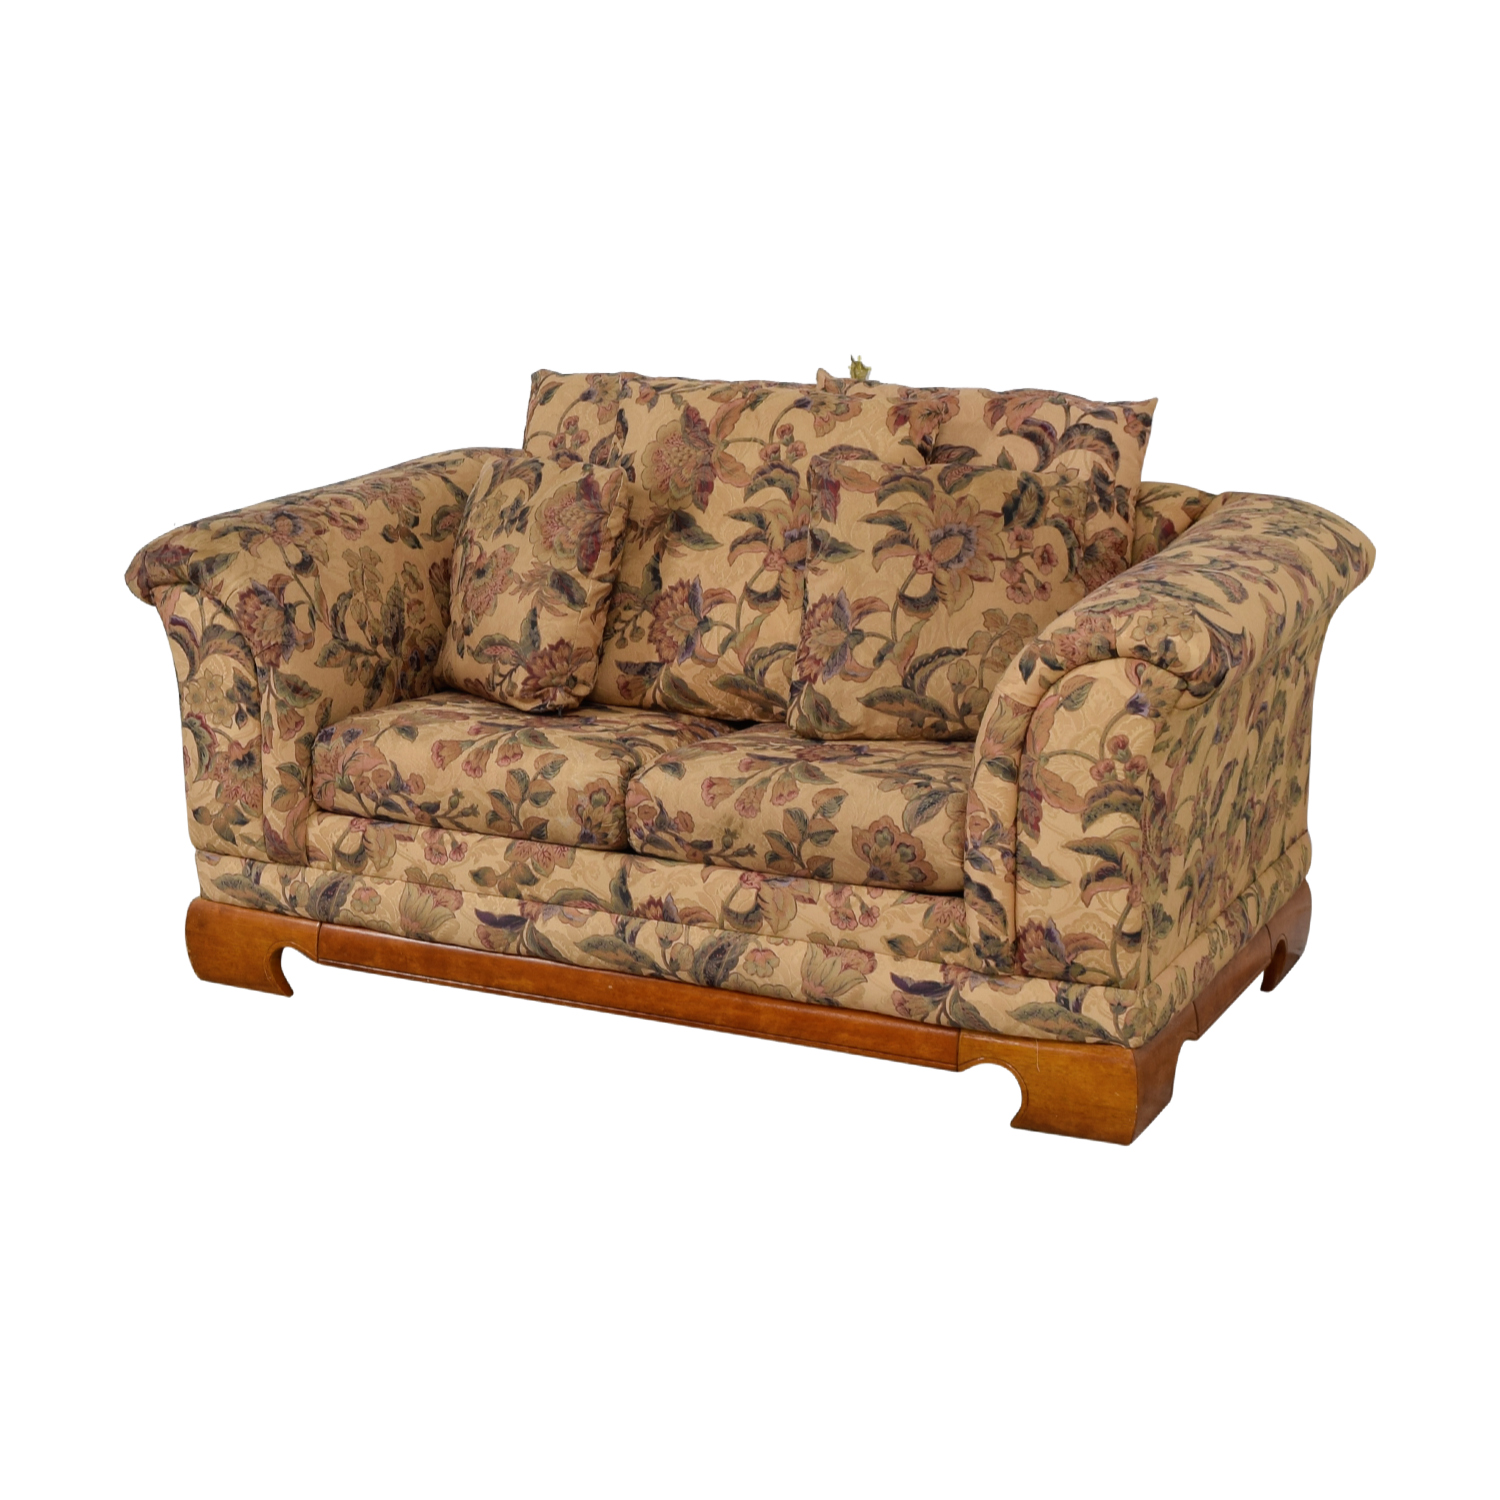 90 Off Sealy Furniture Sealy Furniture Floral Two